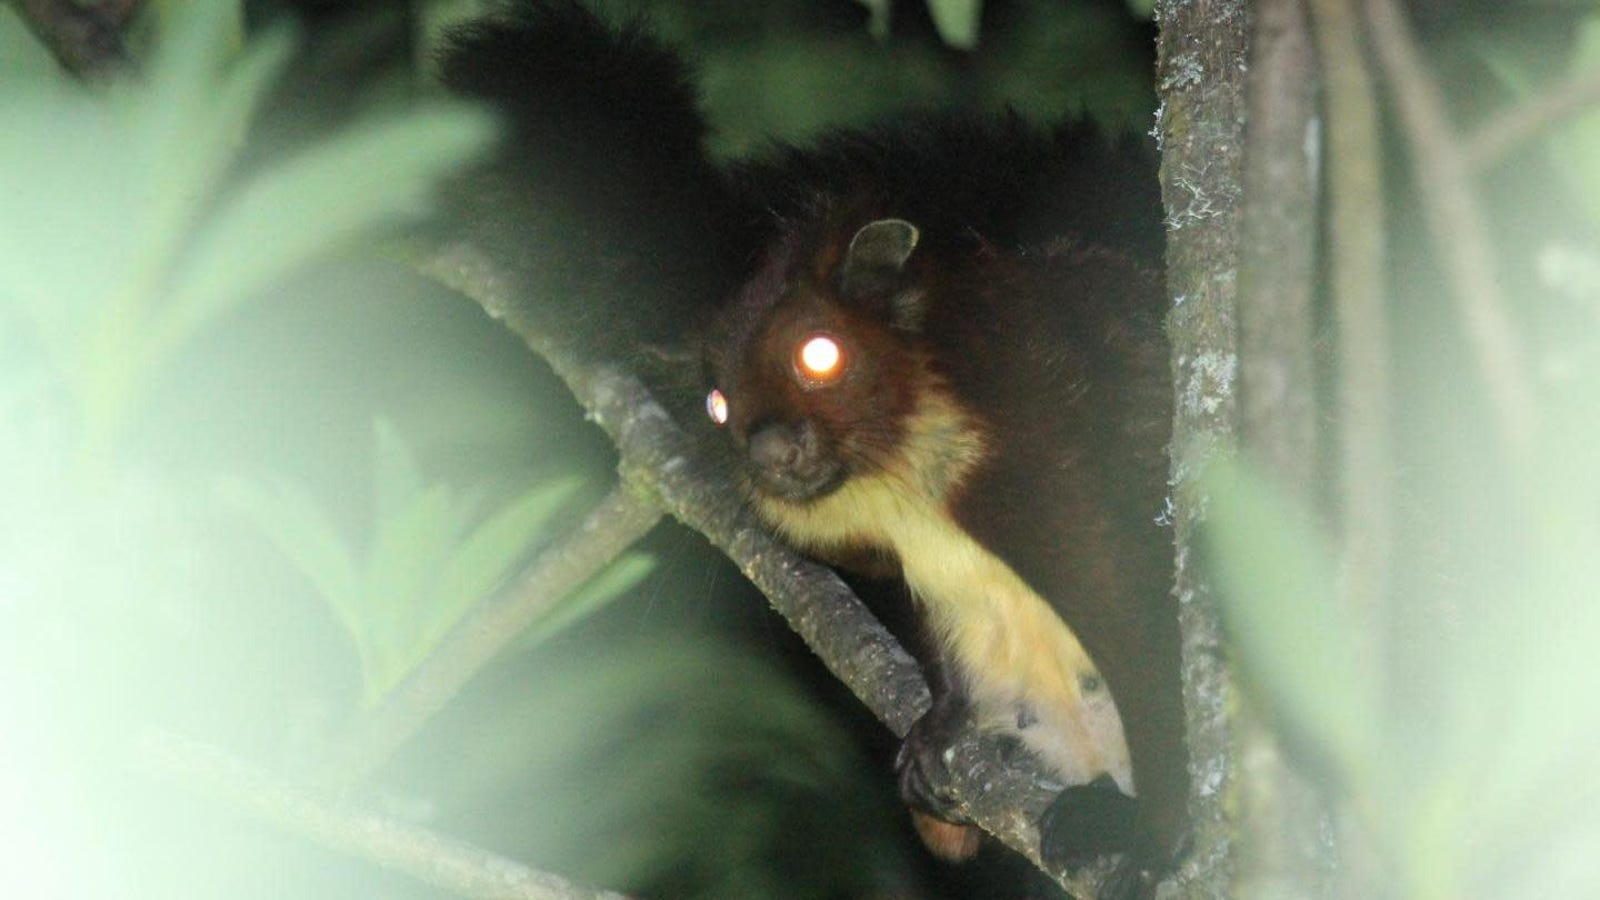 Adorable New Species of Flying Squirrel Discovered in China